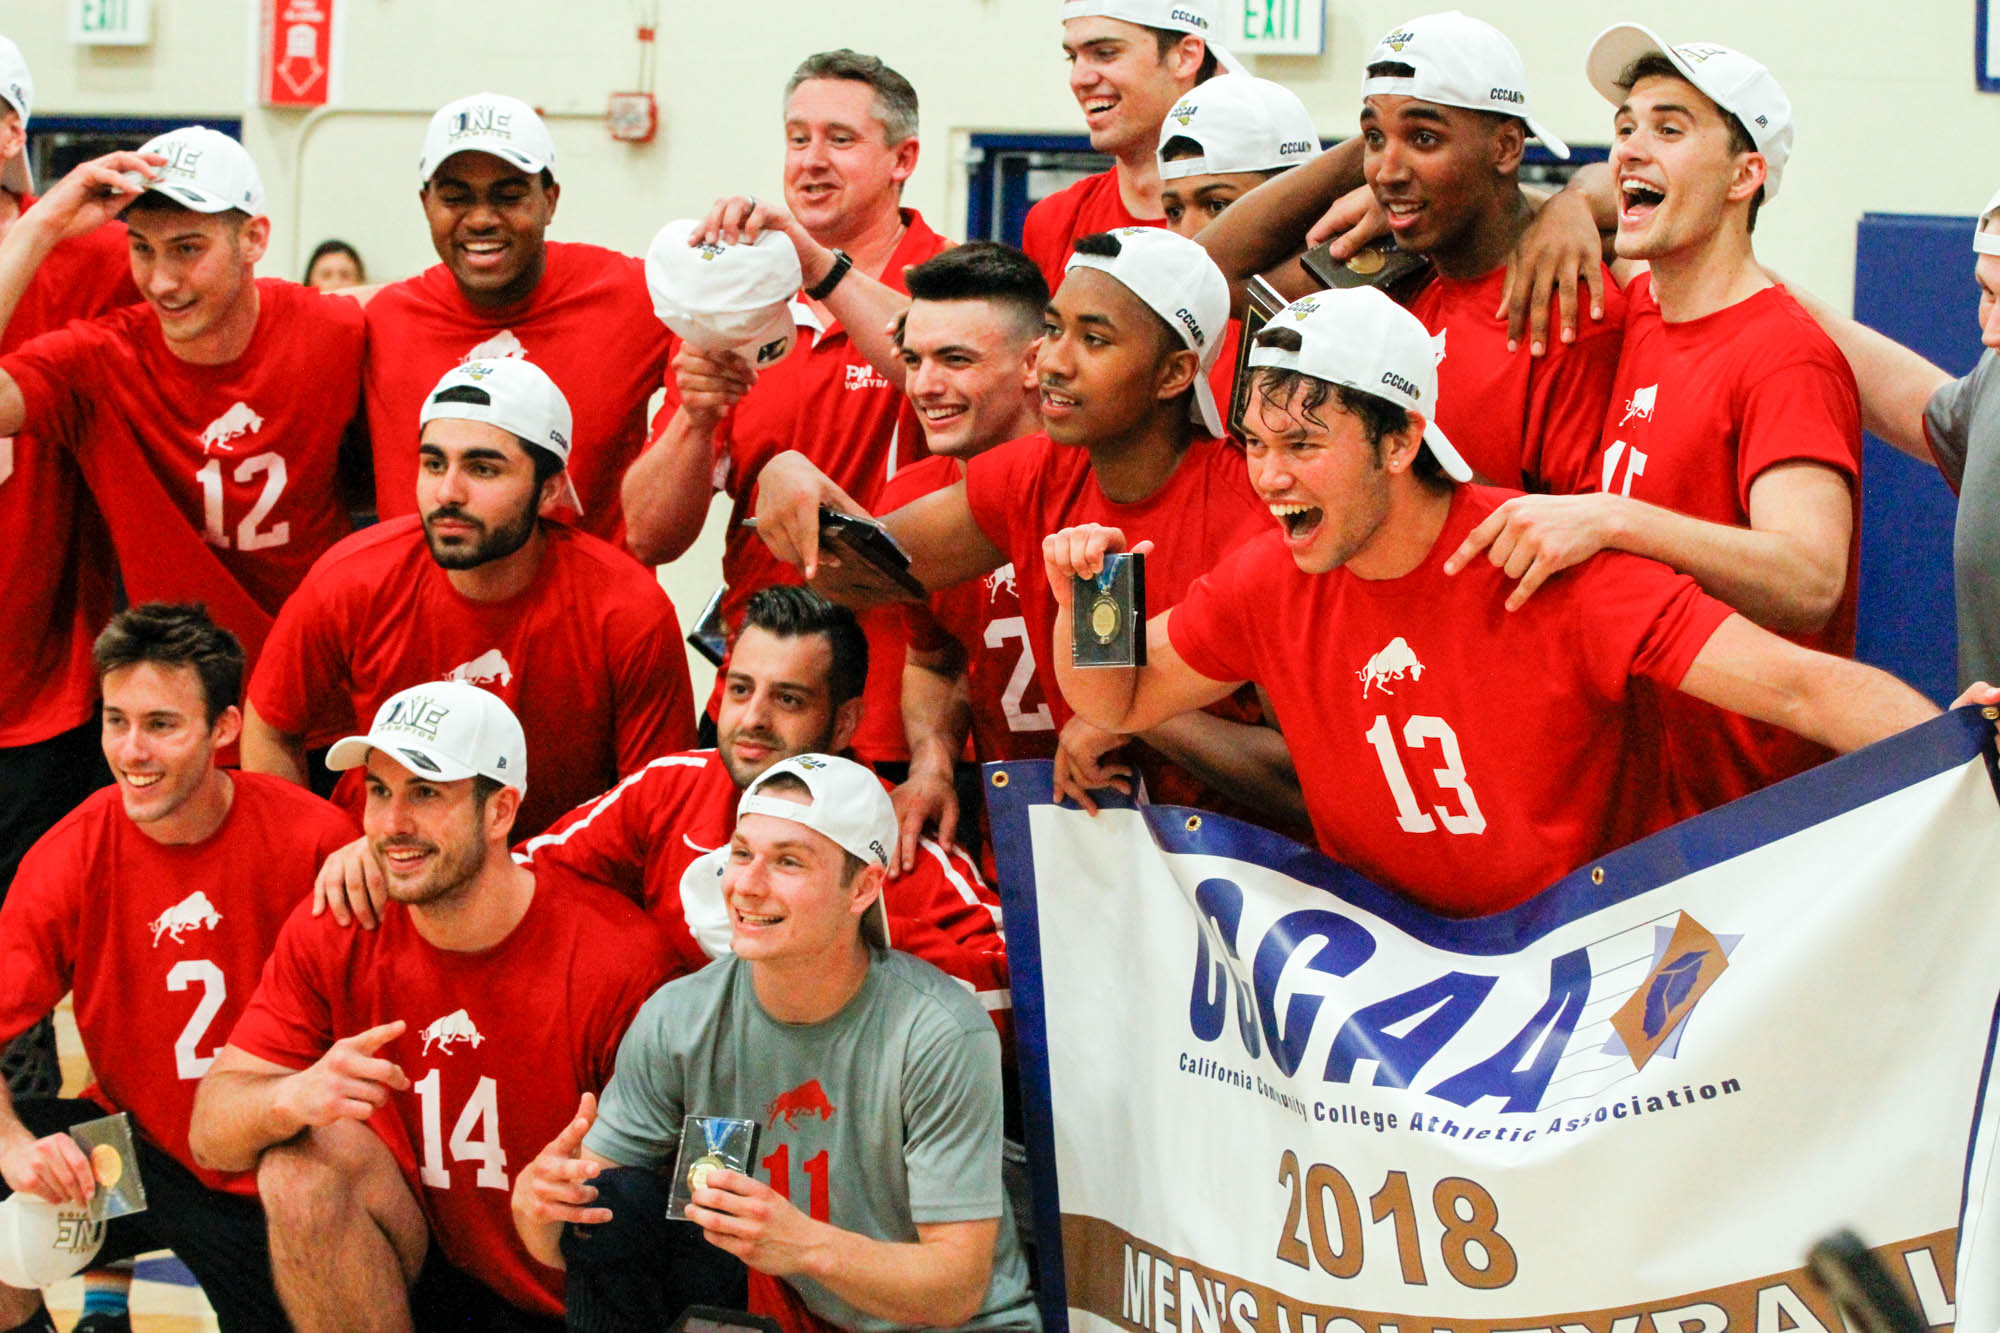 Brahmas win state title in men's volleyball